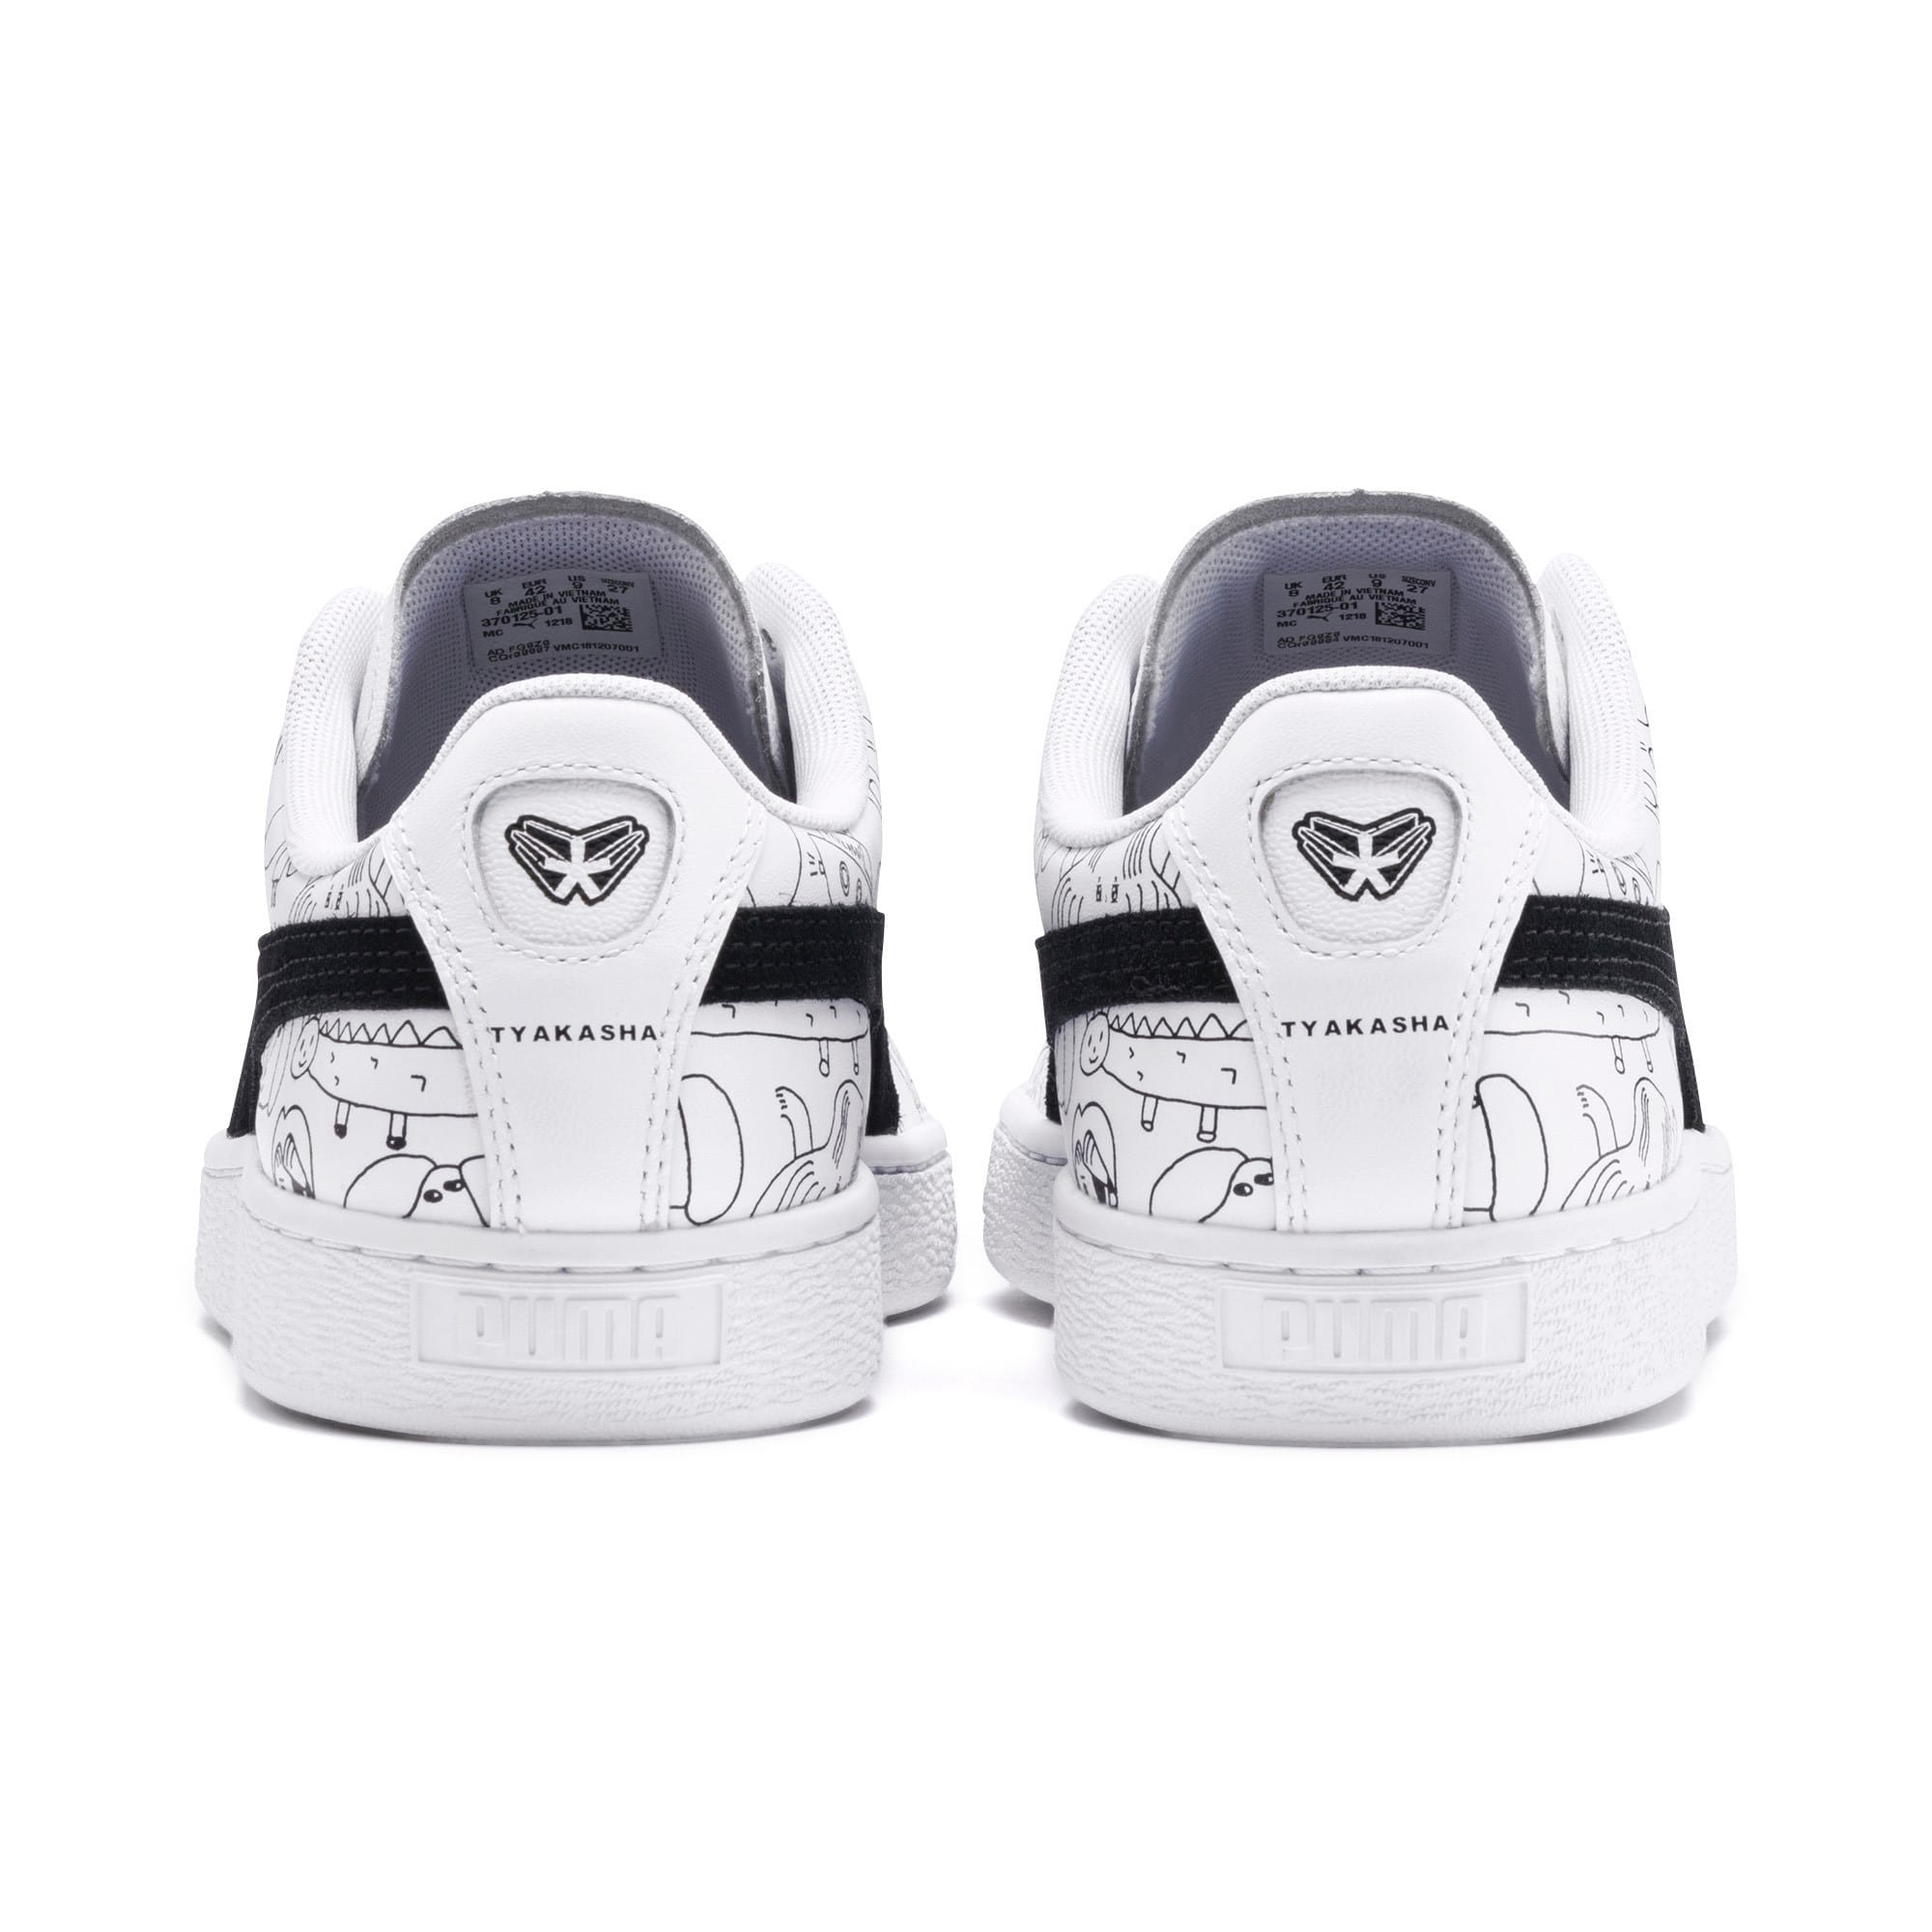 Thumbnail 3 of PUMA x TYAKASHA バスケット スニーカー, Puma White-Puma Black, medium-JPN